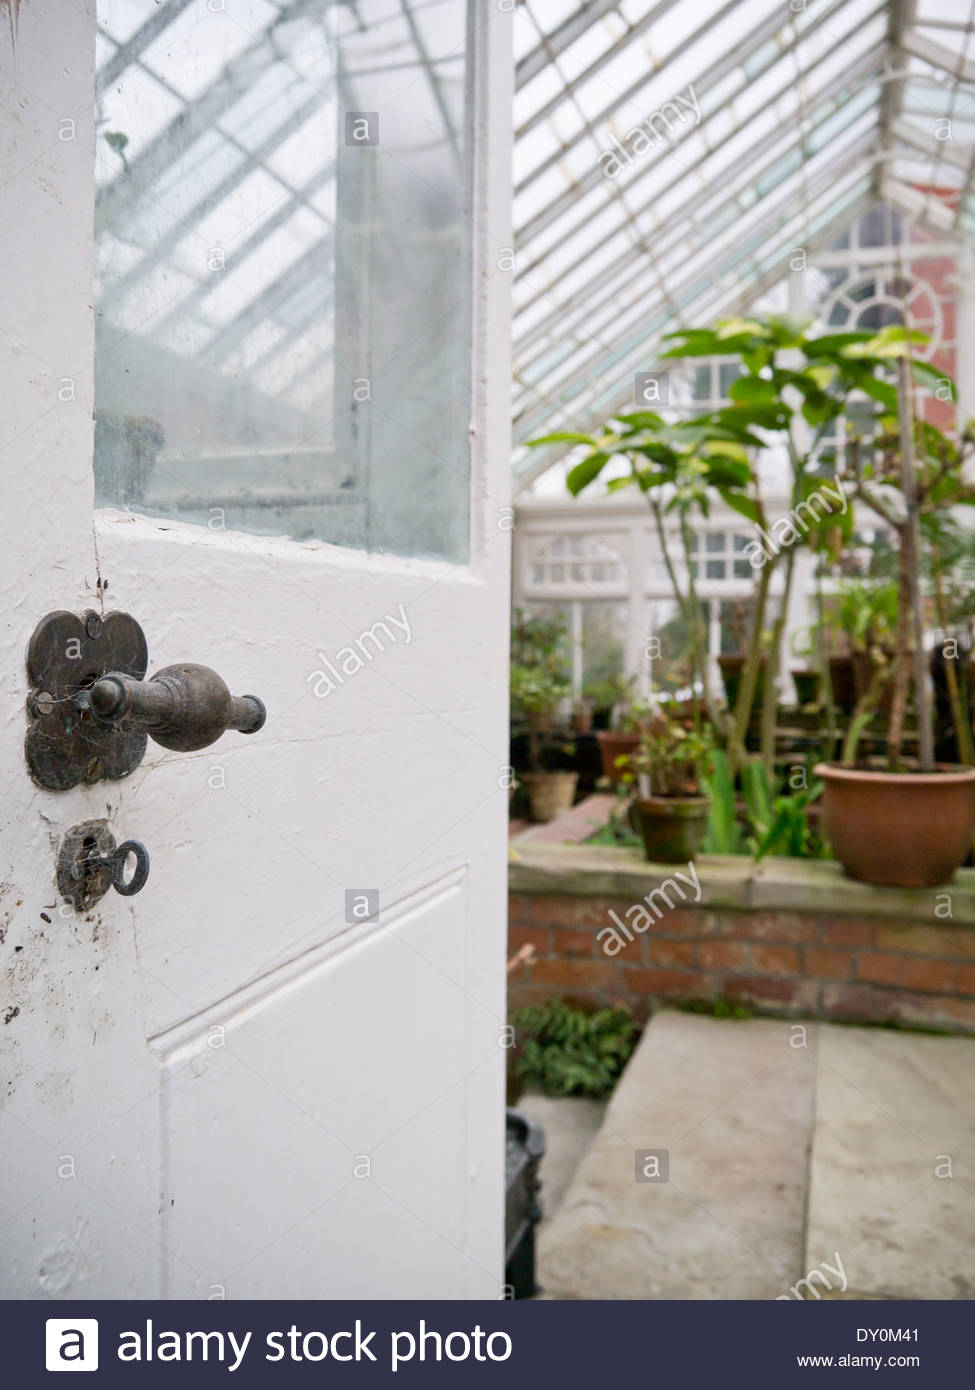 Open door to the greenhouse at Hergest Croft Gardens: Kington, Herefordshire, England. - Stock Image